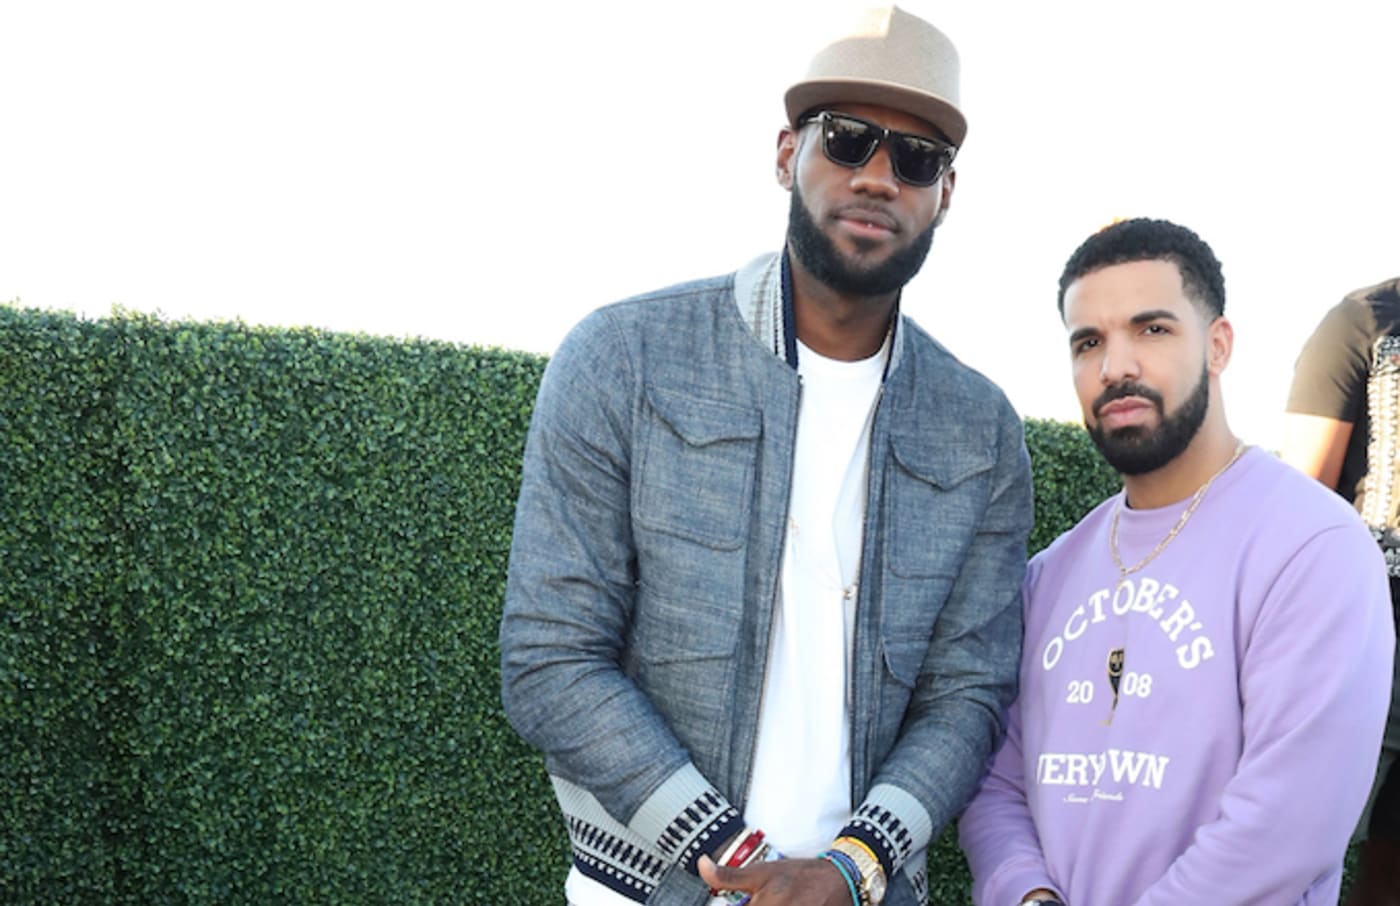 Drake and LeBron James at their pool party in 2017.